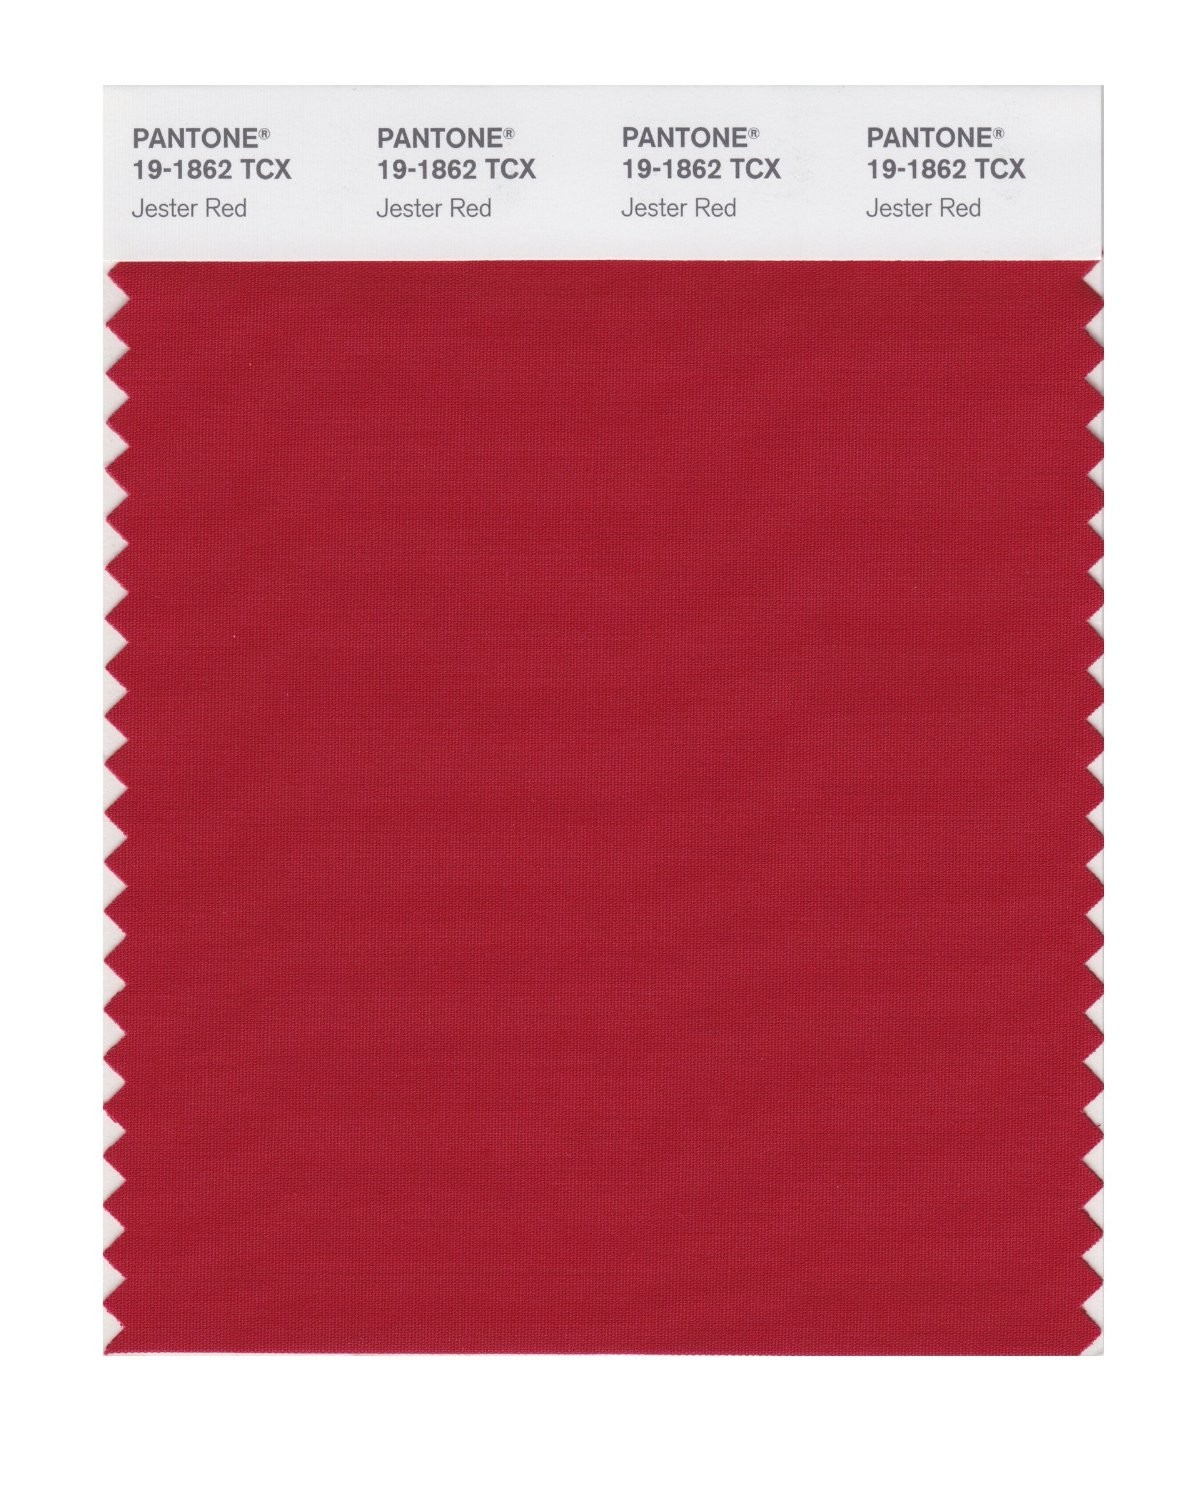 Pantone 19-1862 TCX Swatch Card Jester Red